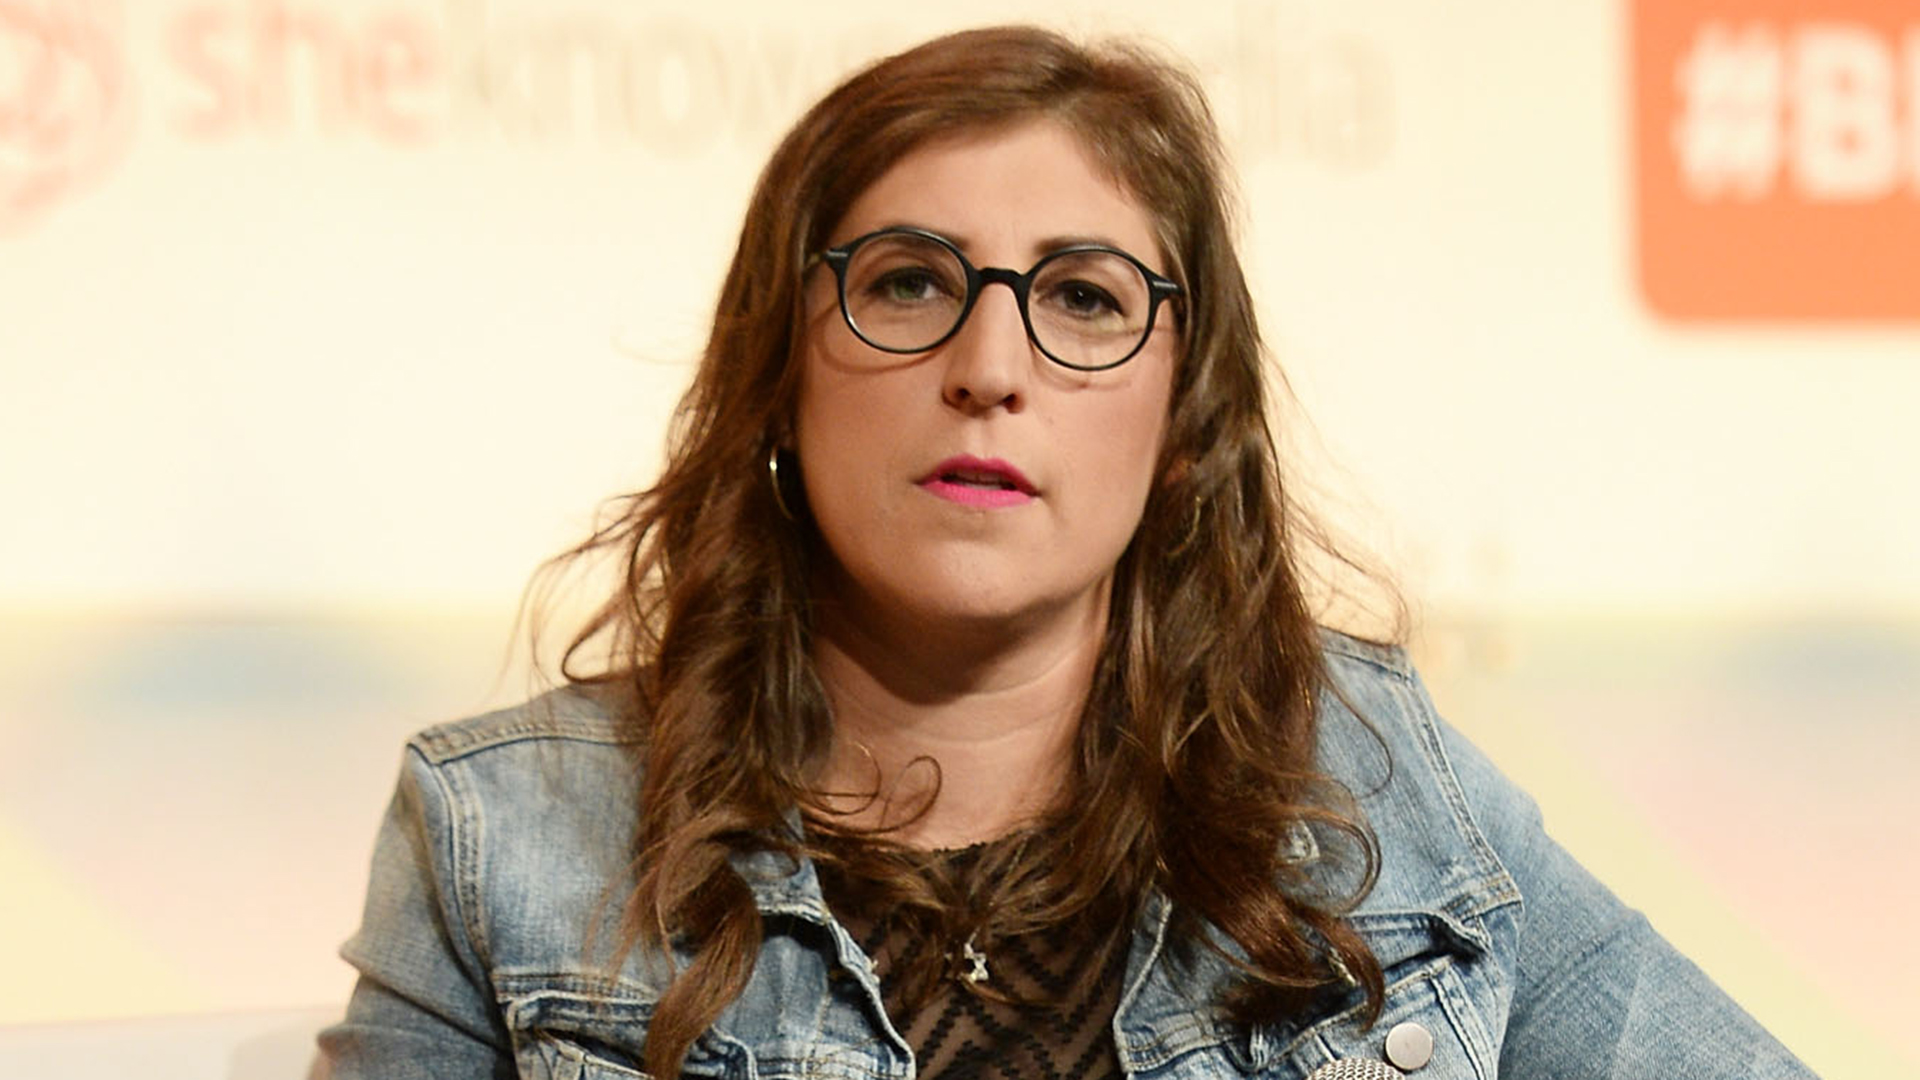 Mayim Bialik responds to accusations of victim-blaming after Weinstein op-ed